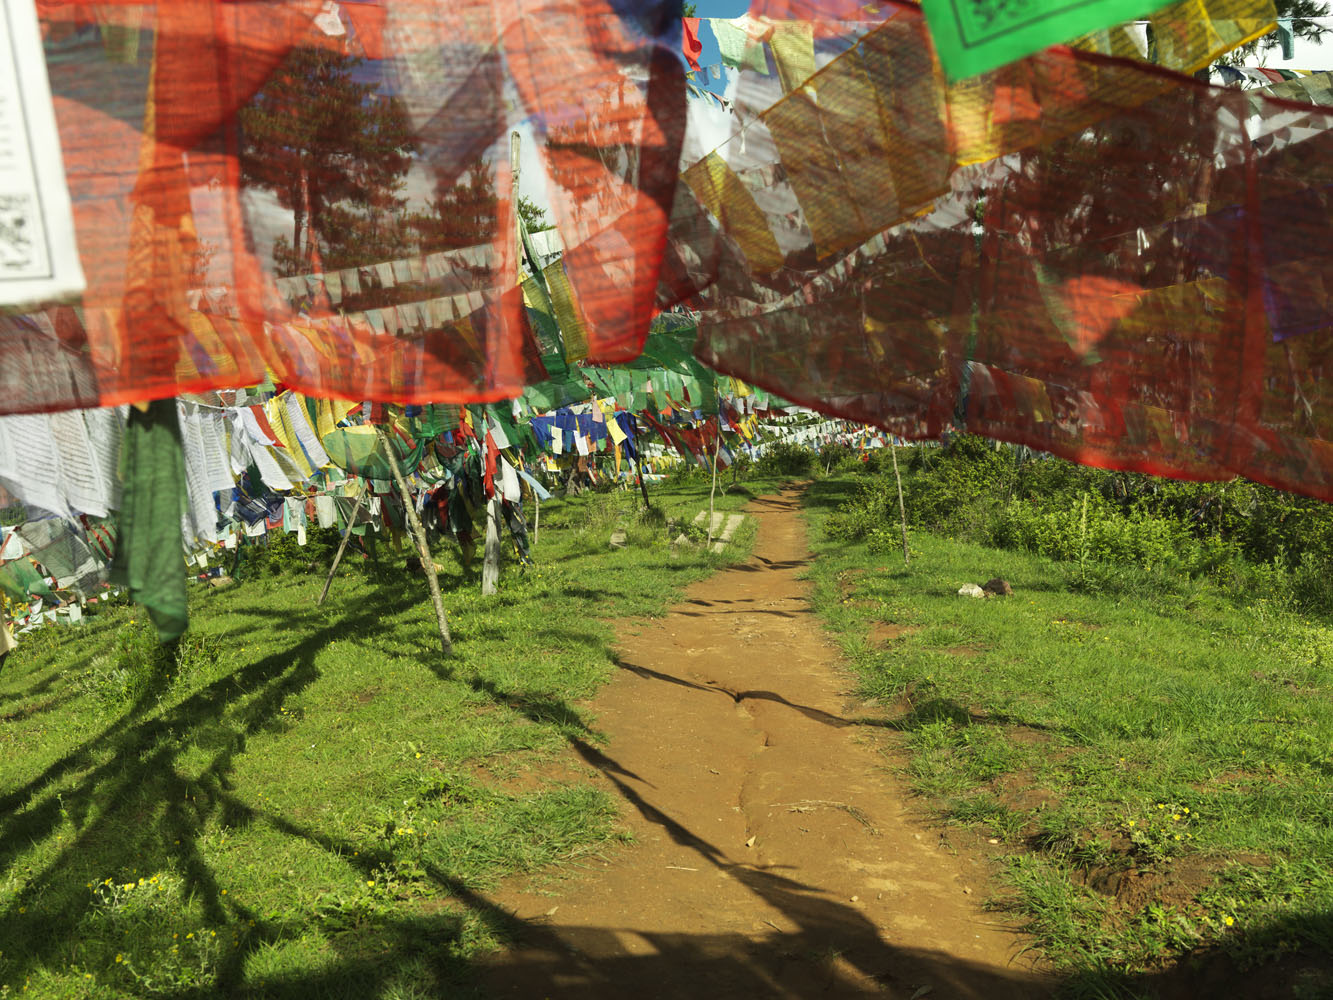 Buddhist Prayer flags around the Bhutan Broadcasting Service tower in Thimpu. BBS is the national radio and television service.